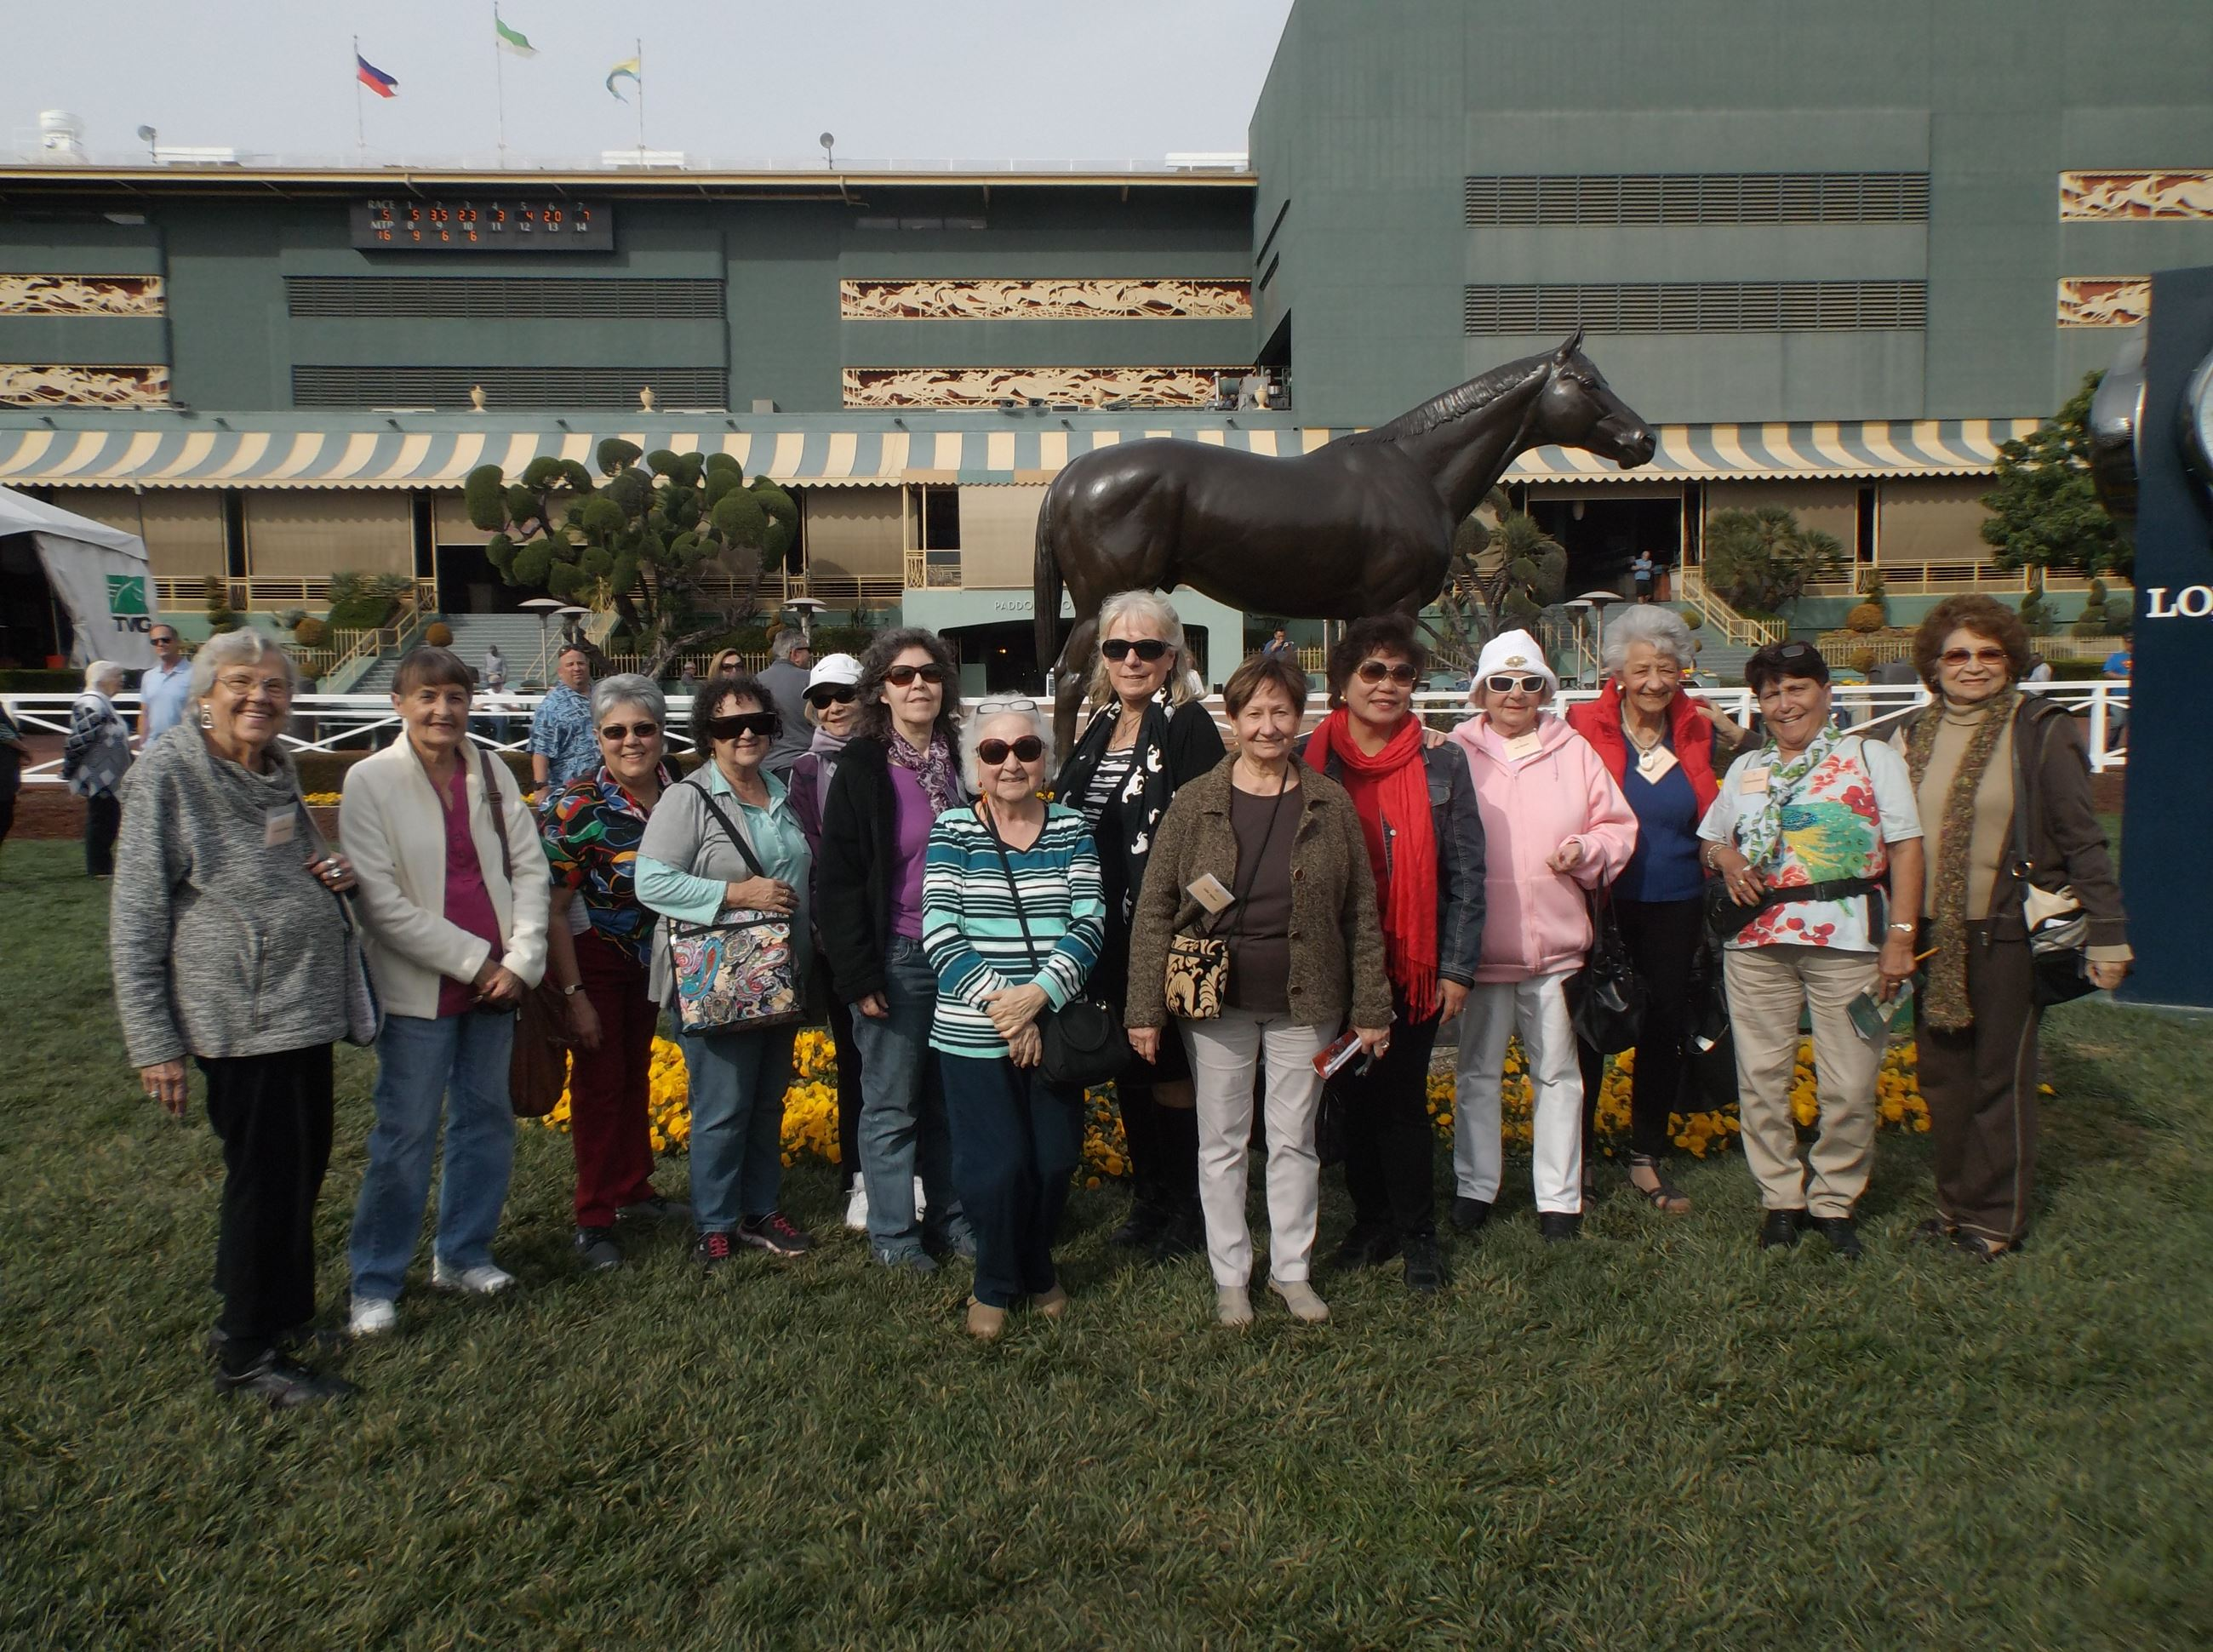 Seniors gathered in front of a horse statue at a fairgrounds